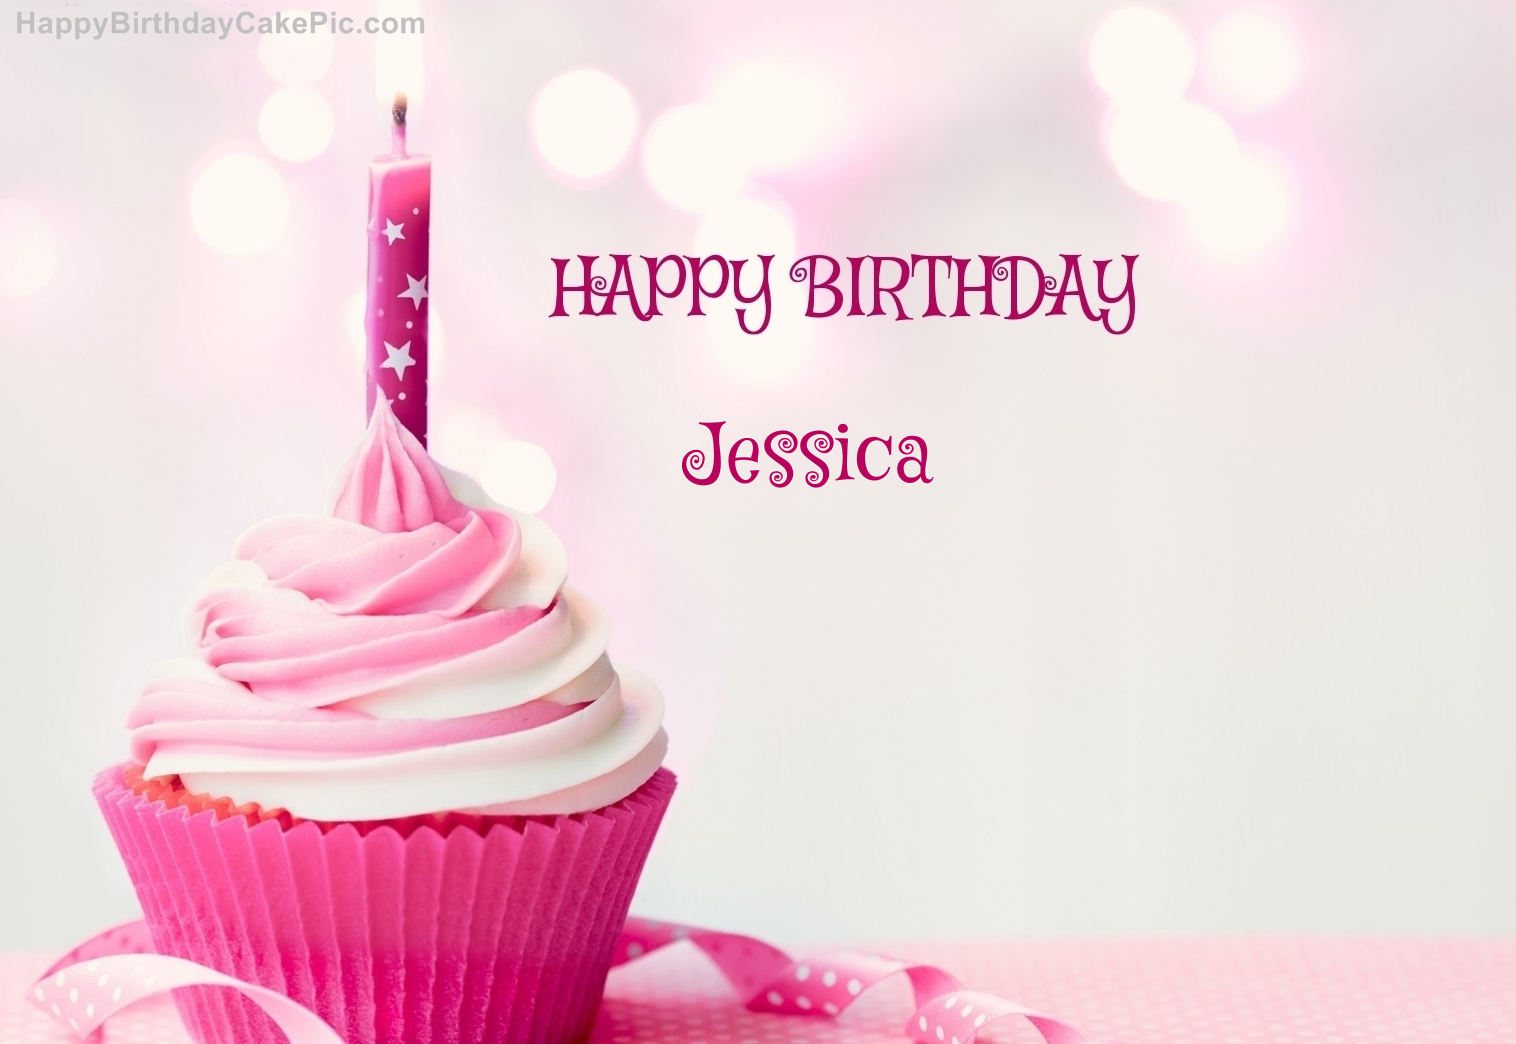 Happy Birthday Cupcake Candle Pink Cake For Jessica